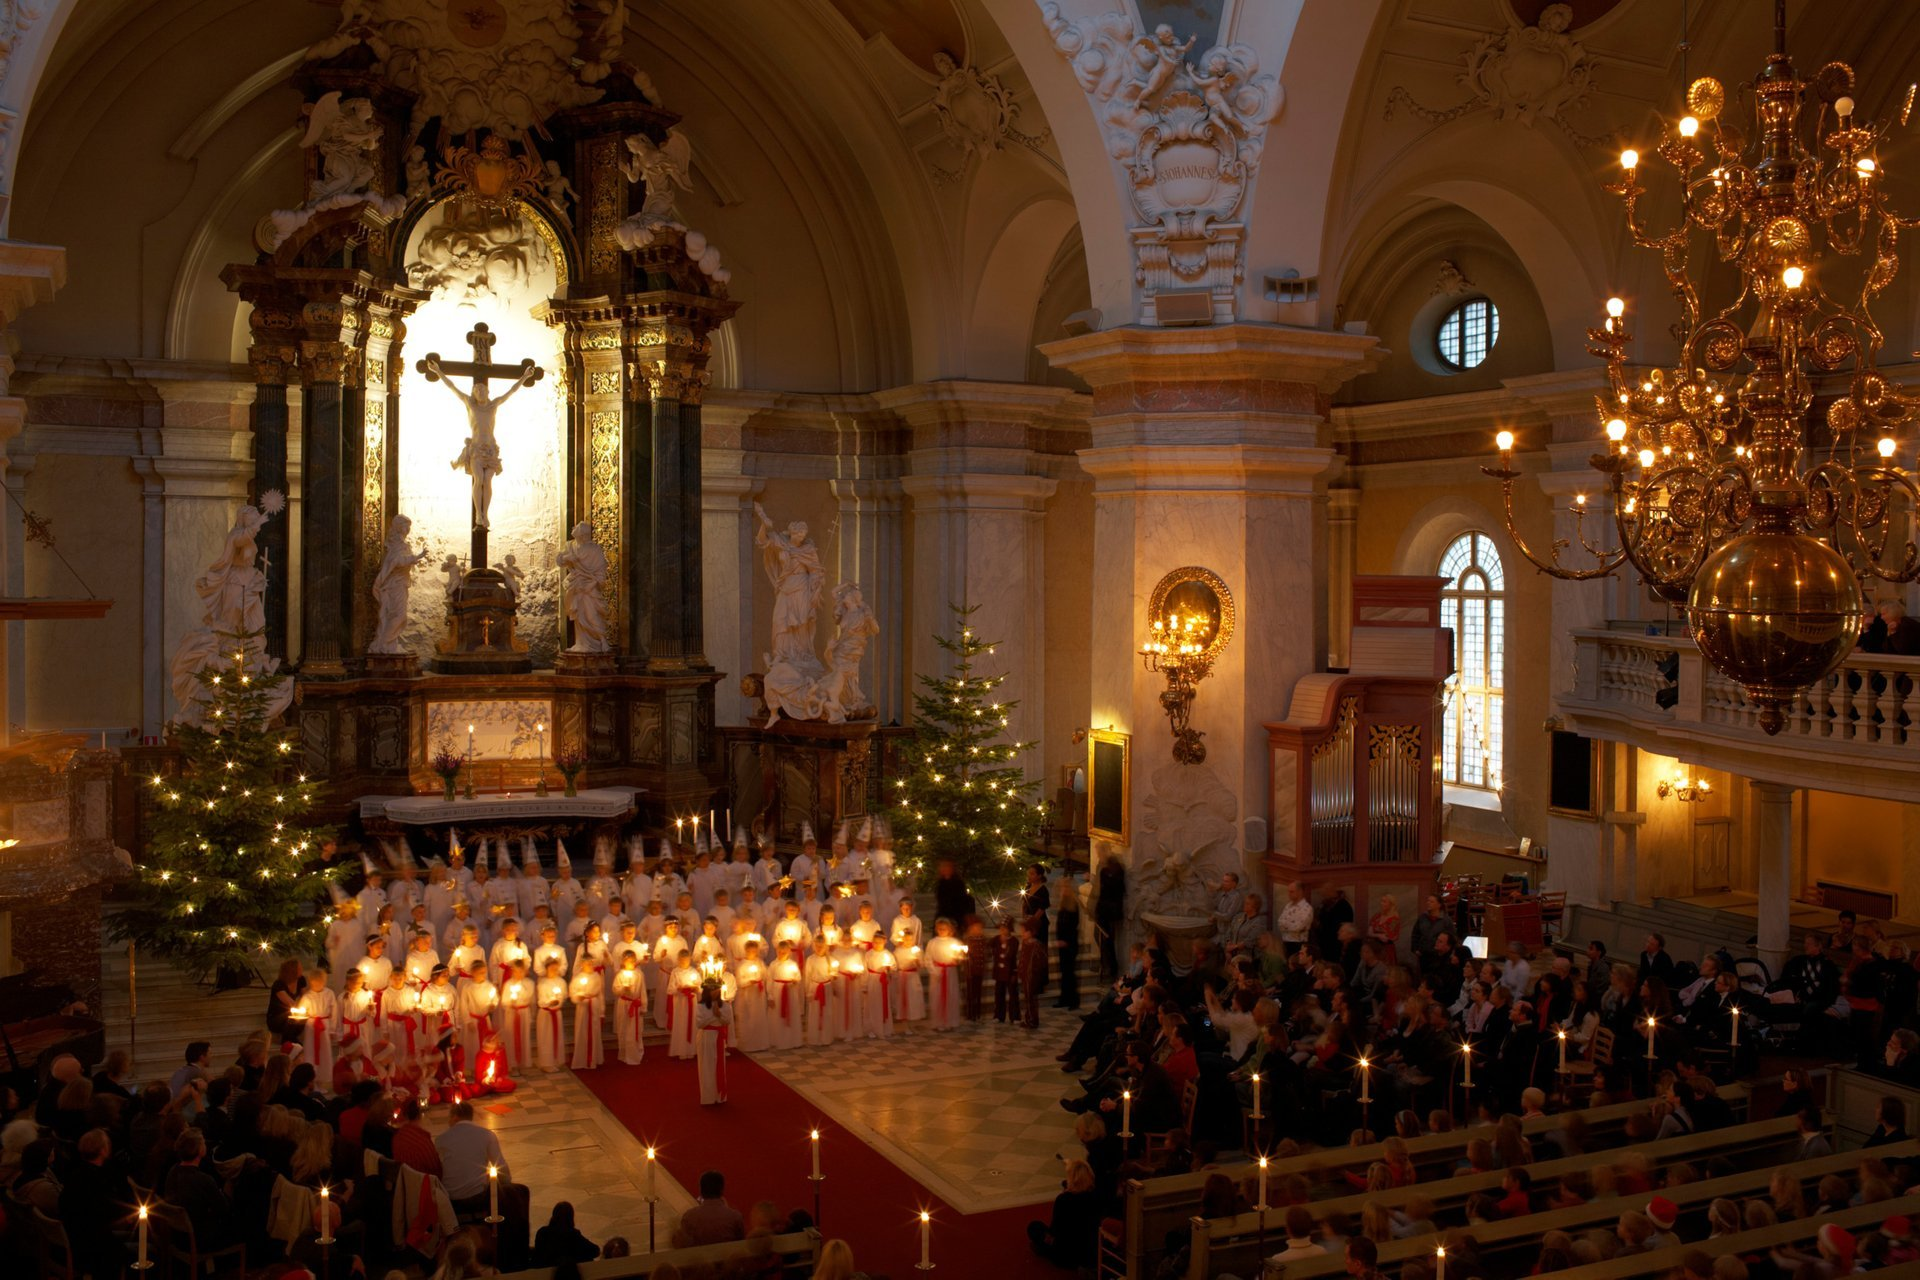 Lucia celebration, Gustav Vasa Church, Stockholm, Sweden 2020